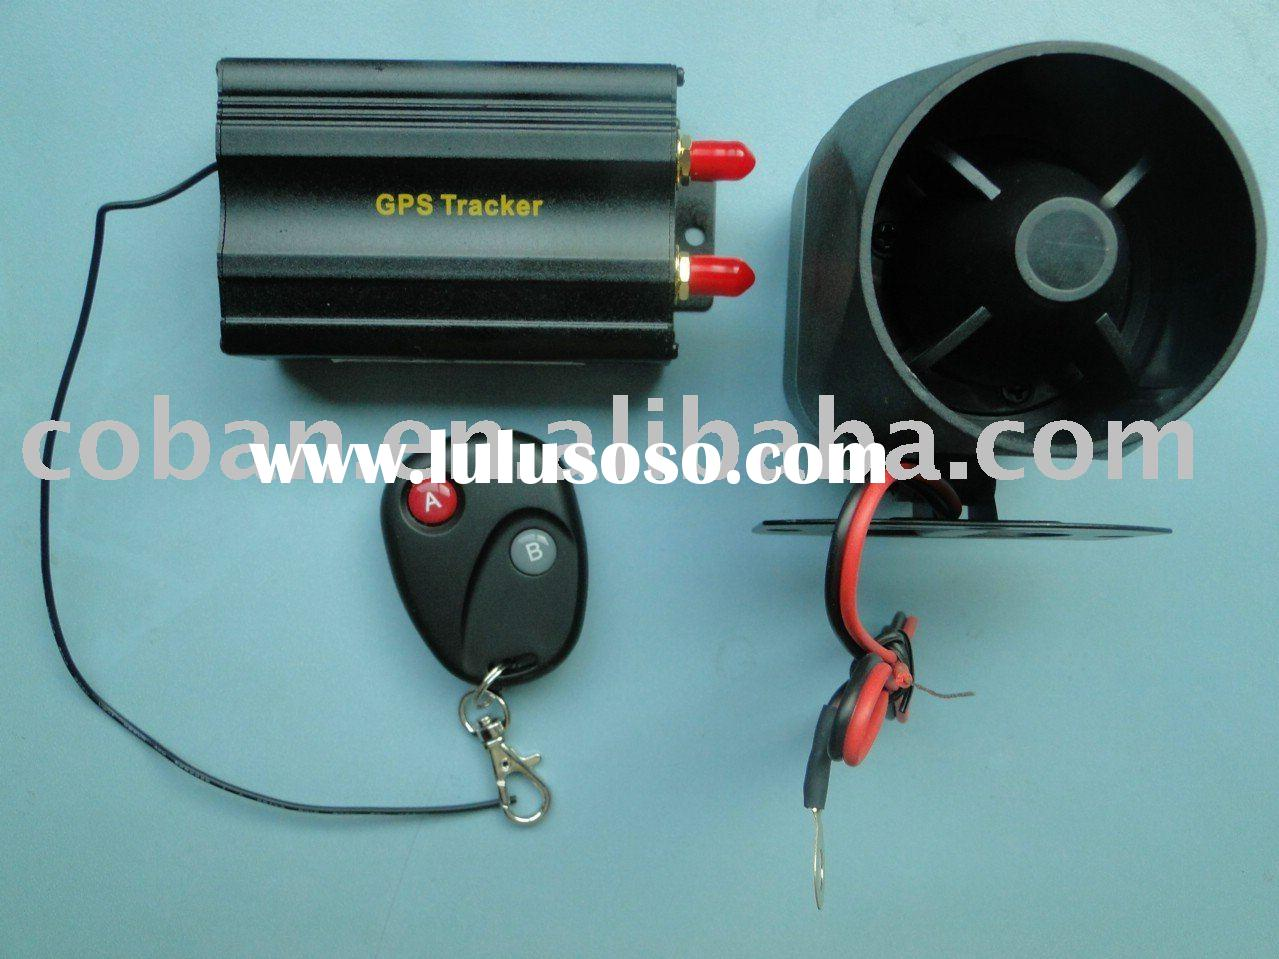 GPS Car Tracker with Remote Control and Immobilizer